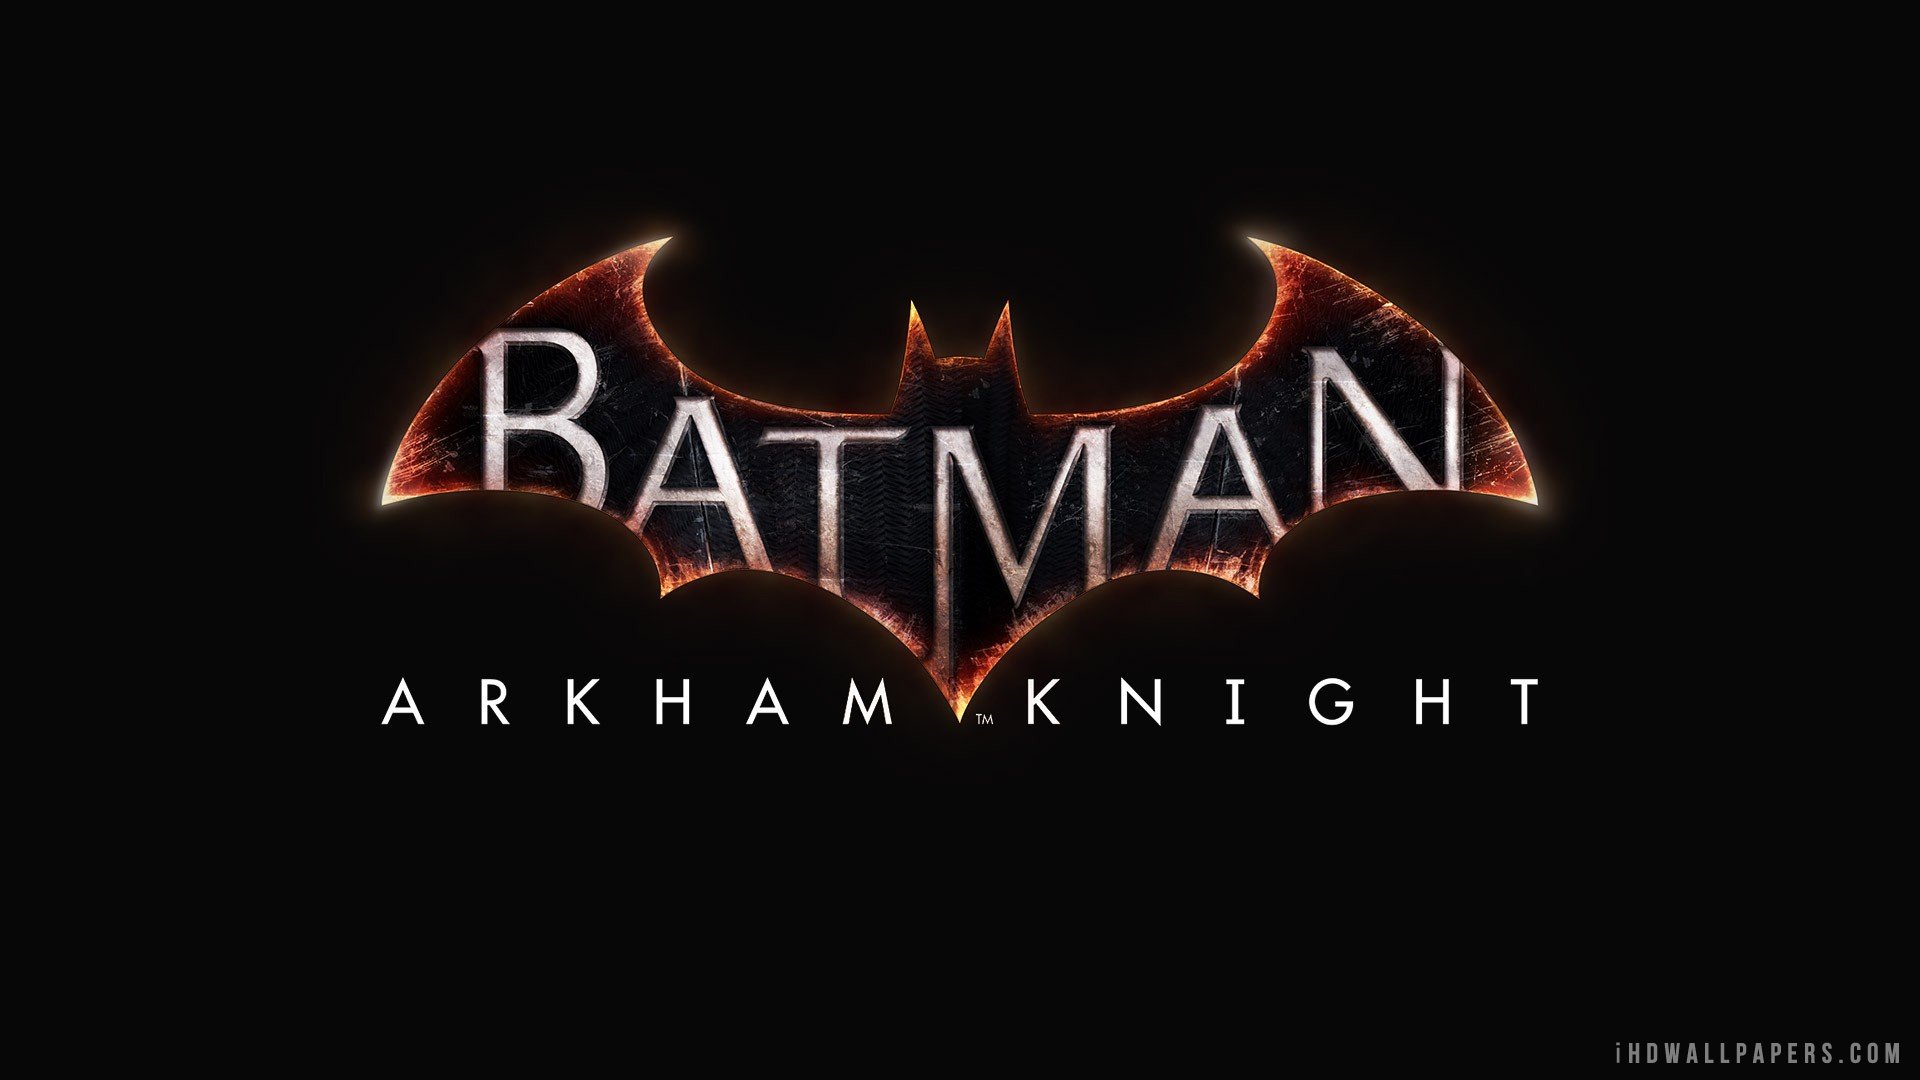 Batman Arkham Knight Logo HD Wallpaper   iHD Wallpapers 1920x1080